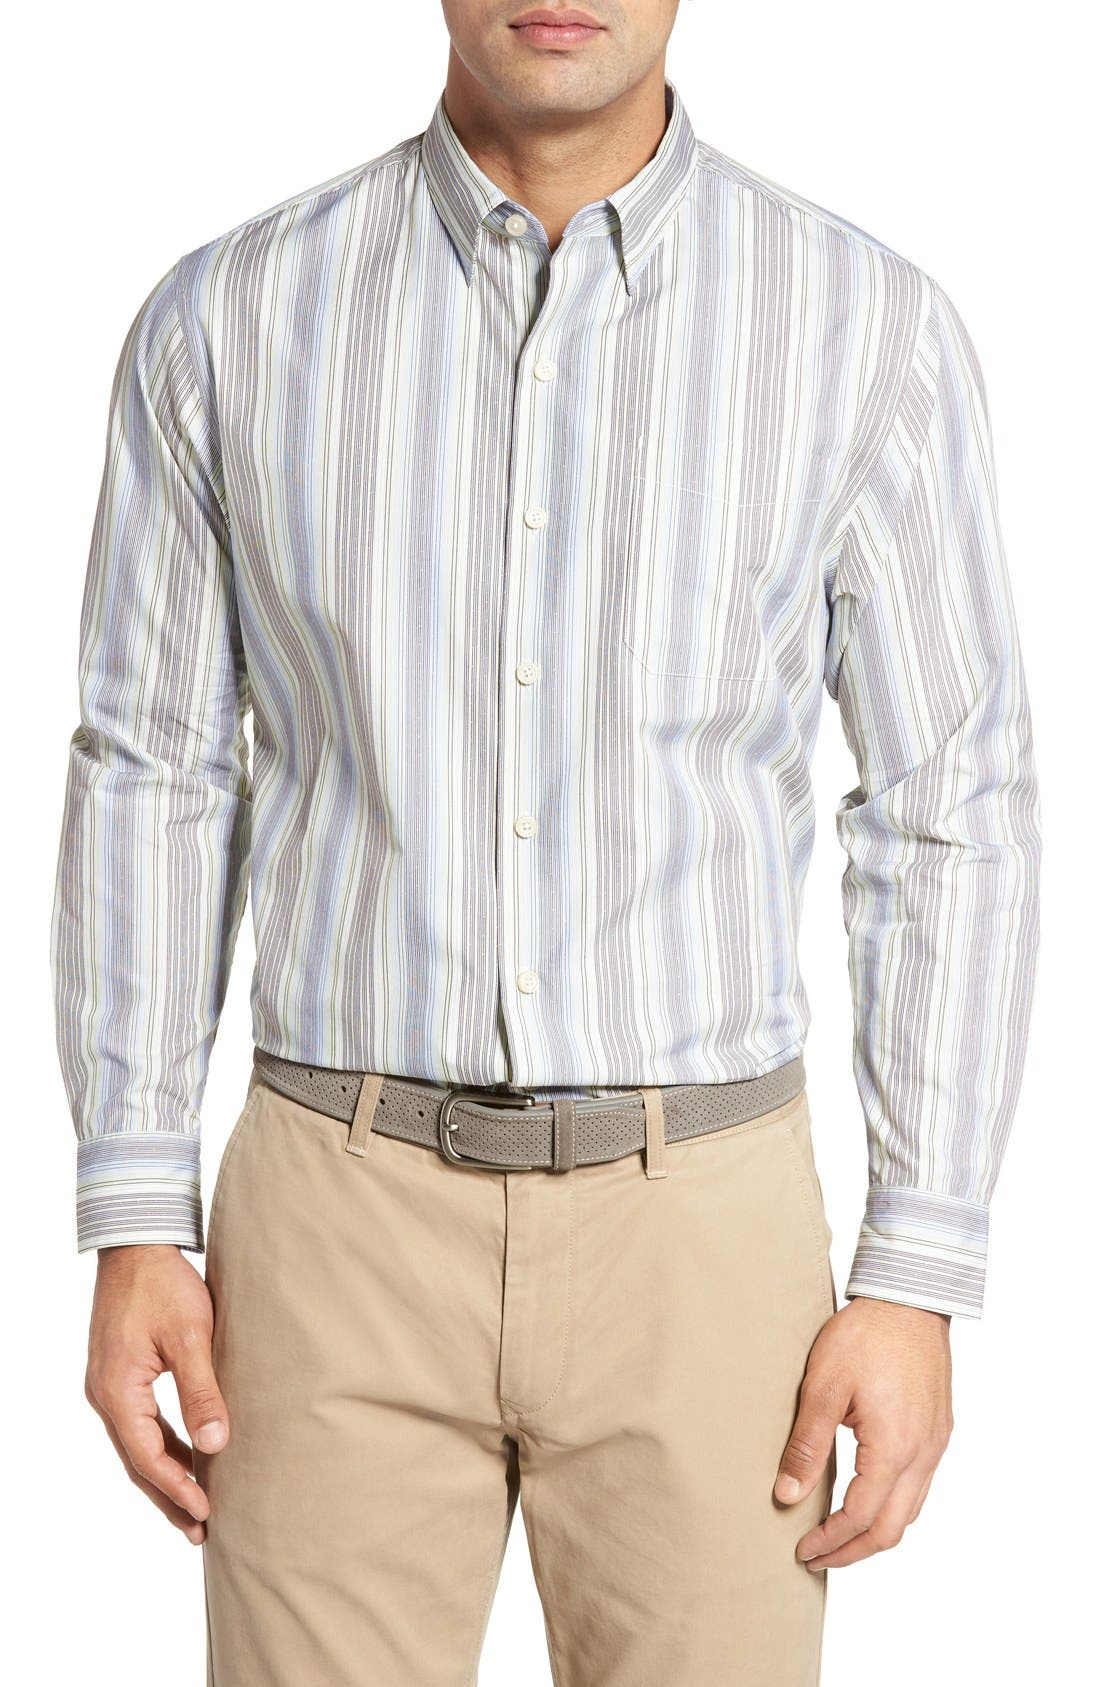 Main Image - Tommy Bahama Roda Viva Original Fit Sport Shirt